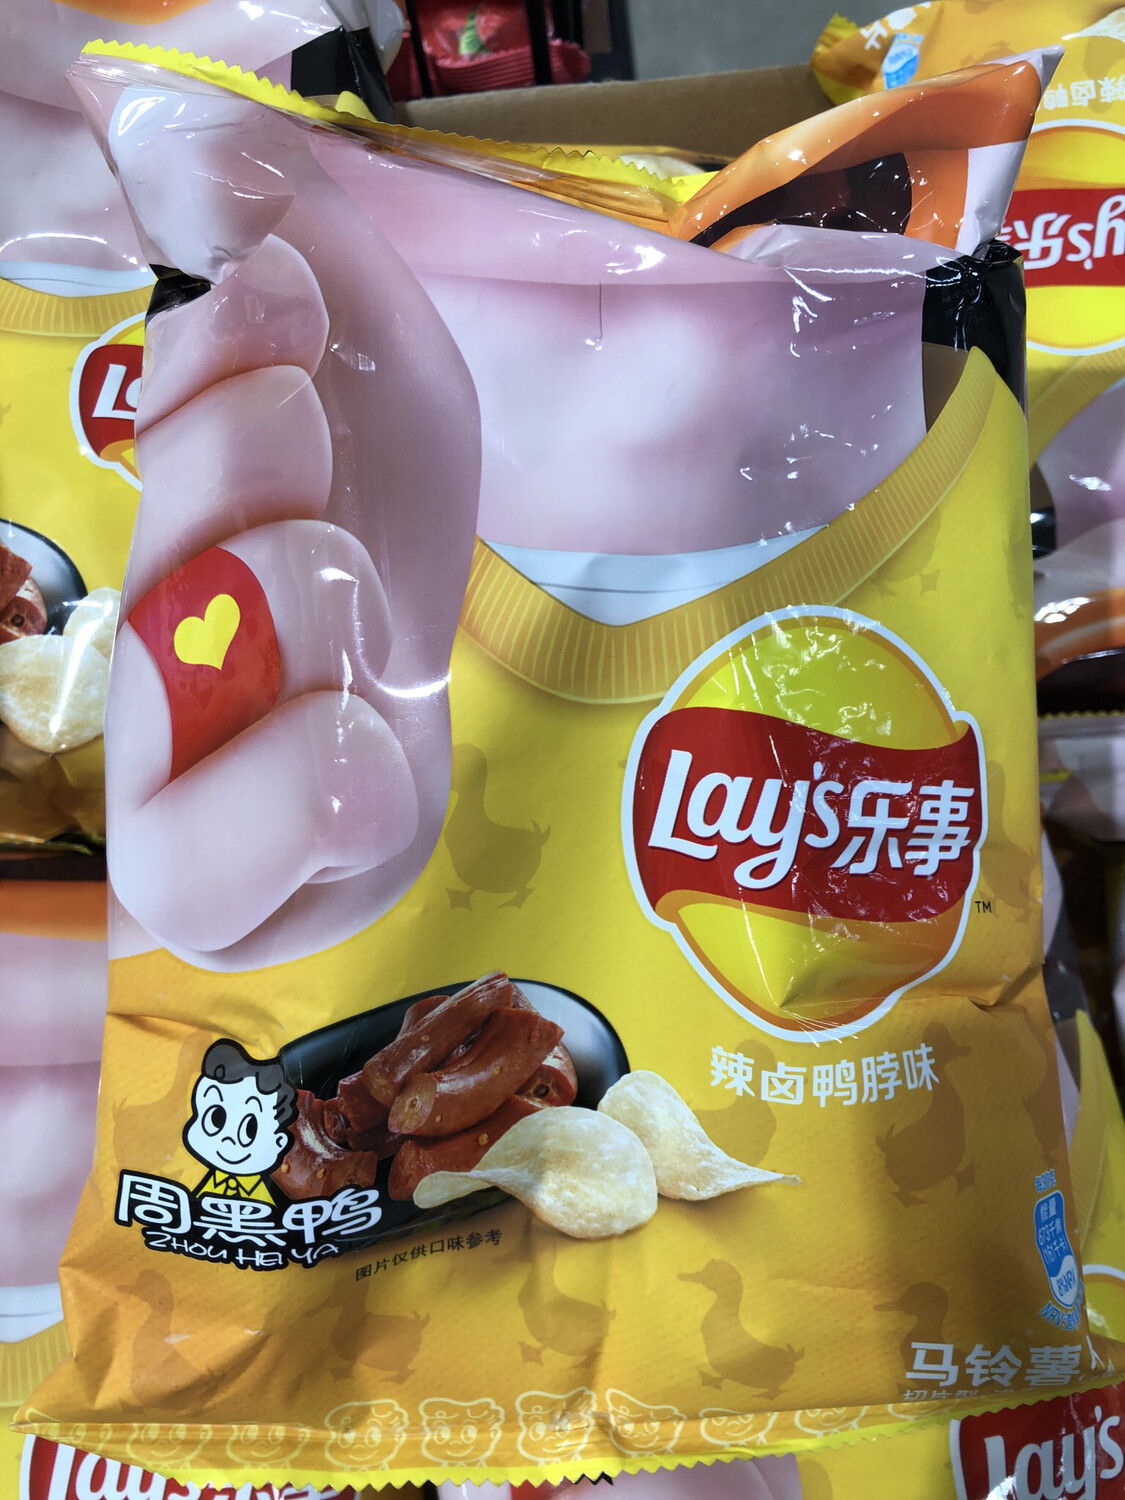 【RBG】Lay's Potato Chips (Spicy Artificial Duck Neck Flavor) 乐事薯片 周黑鸭辣卤鸭脖口味